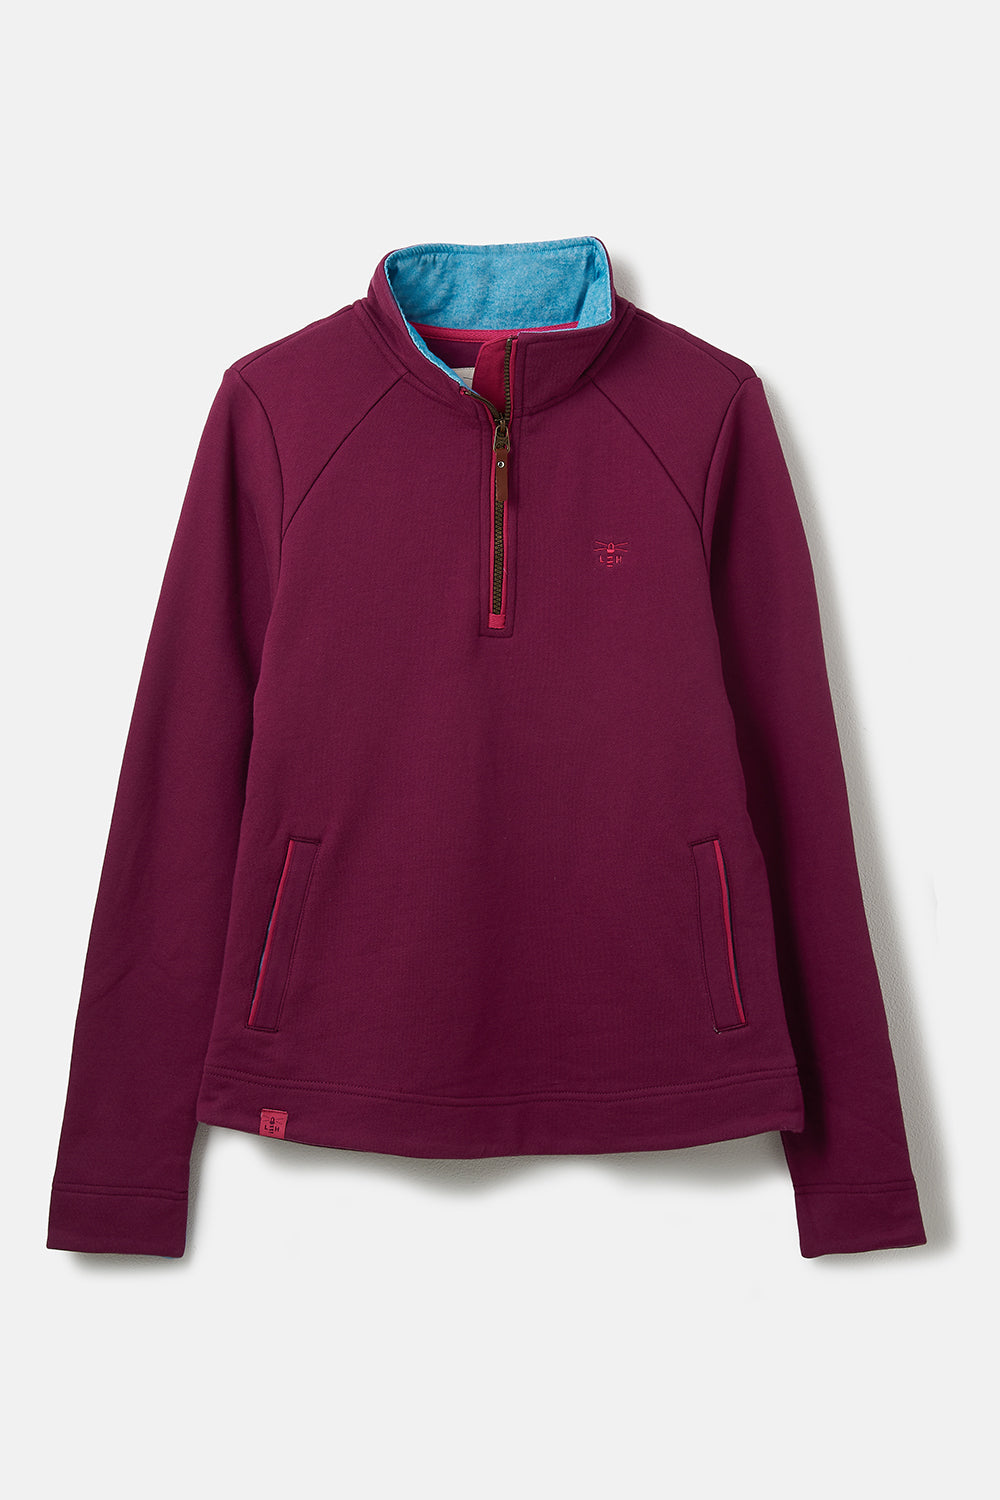 Shore Sweatshirt - Plum